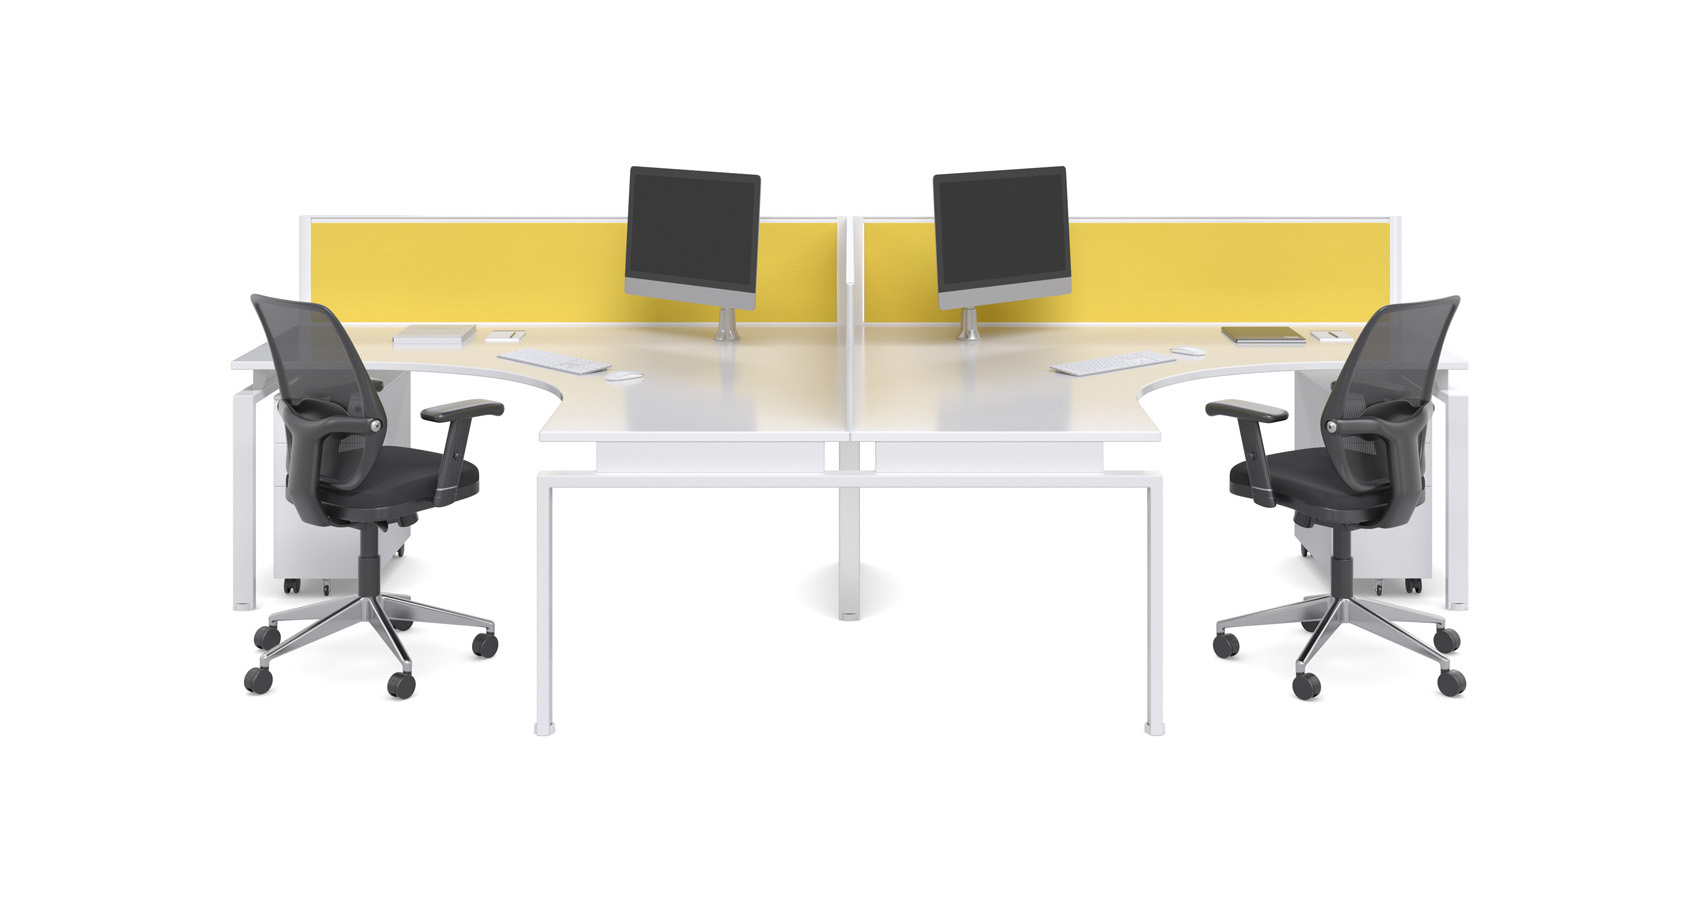 Benchwork_2Way_Yellow